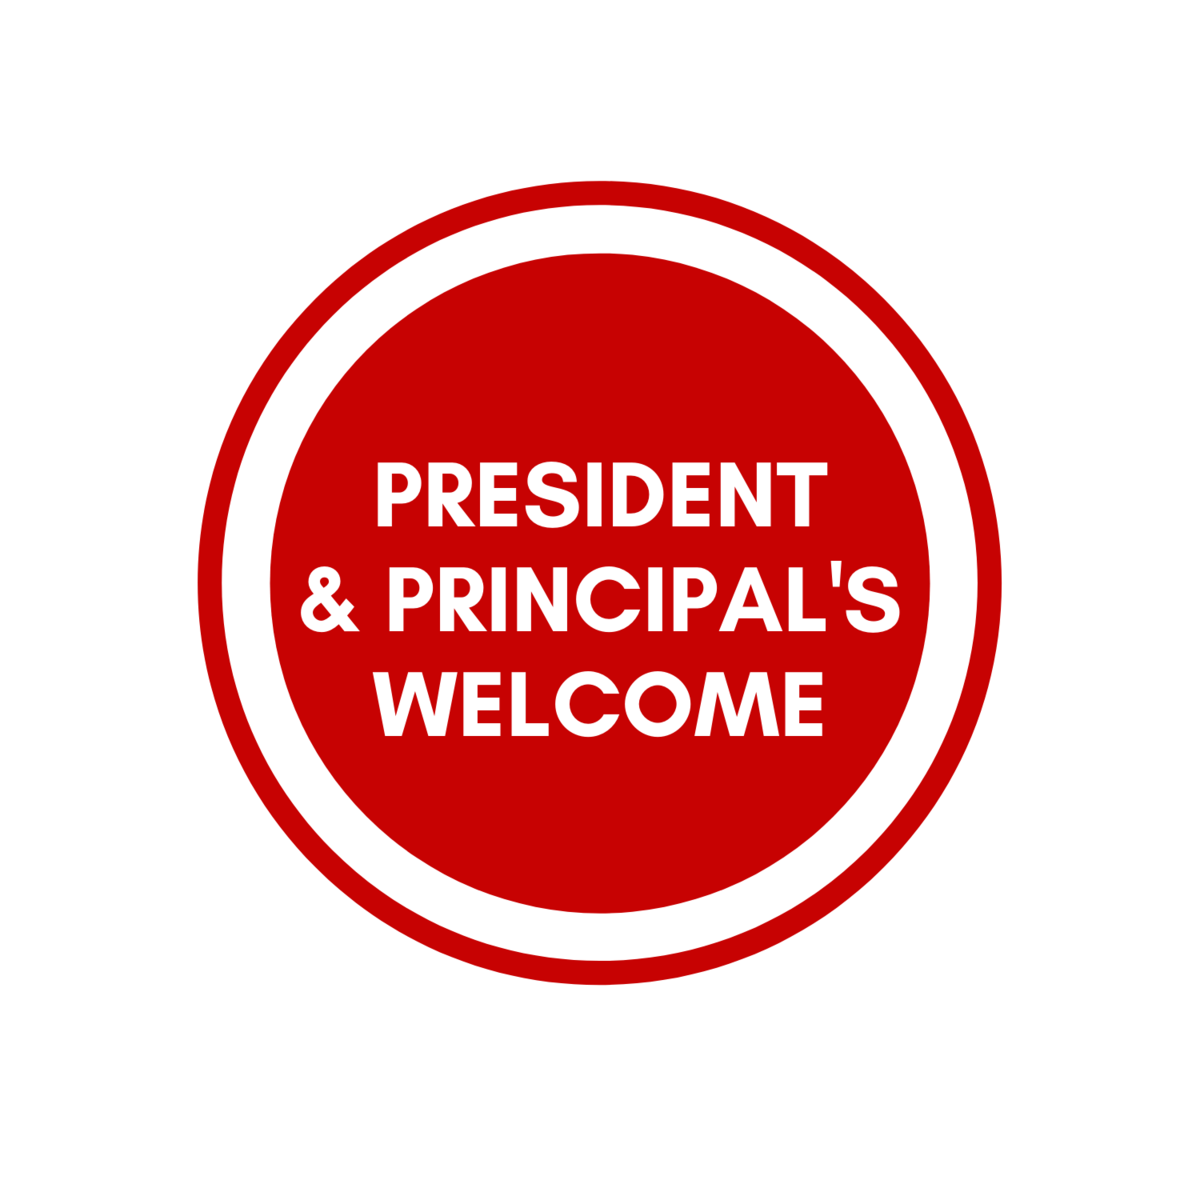 president and principals welsome